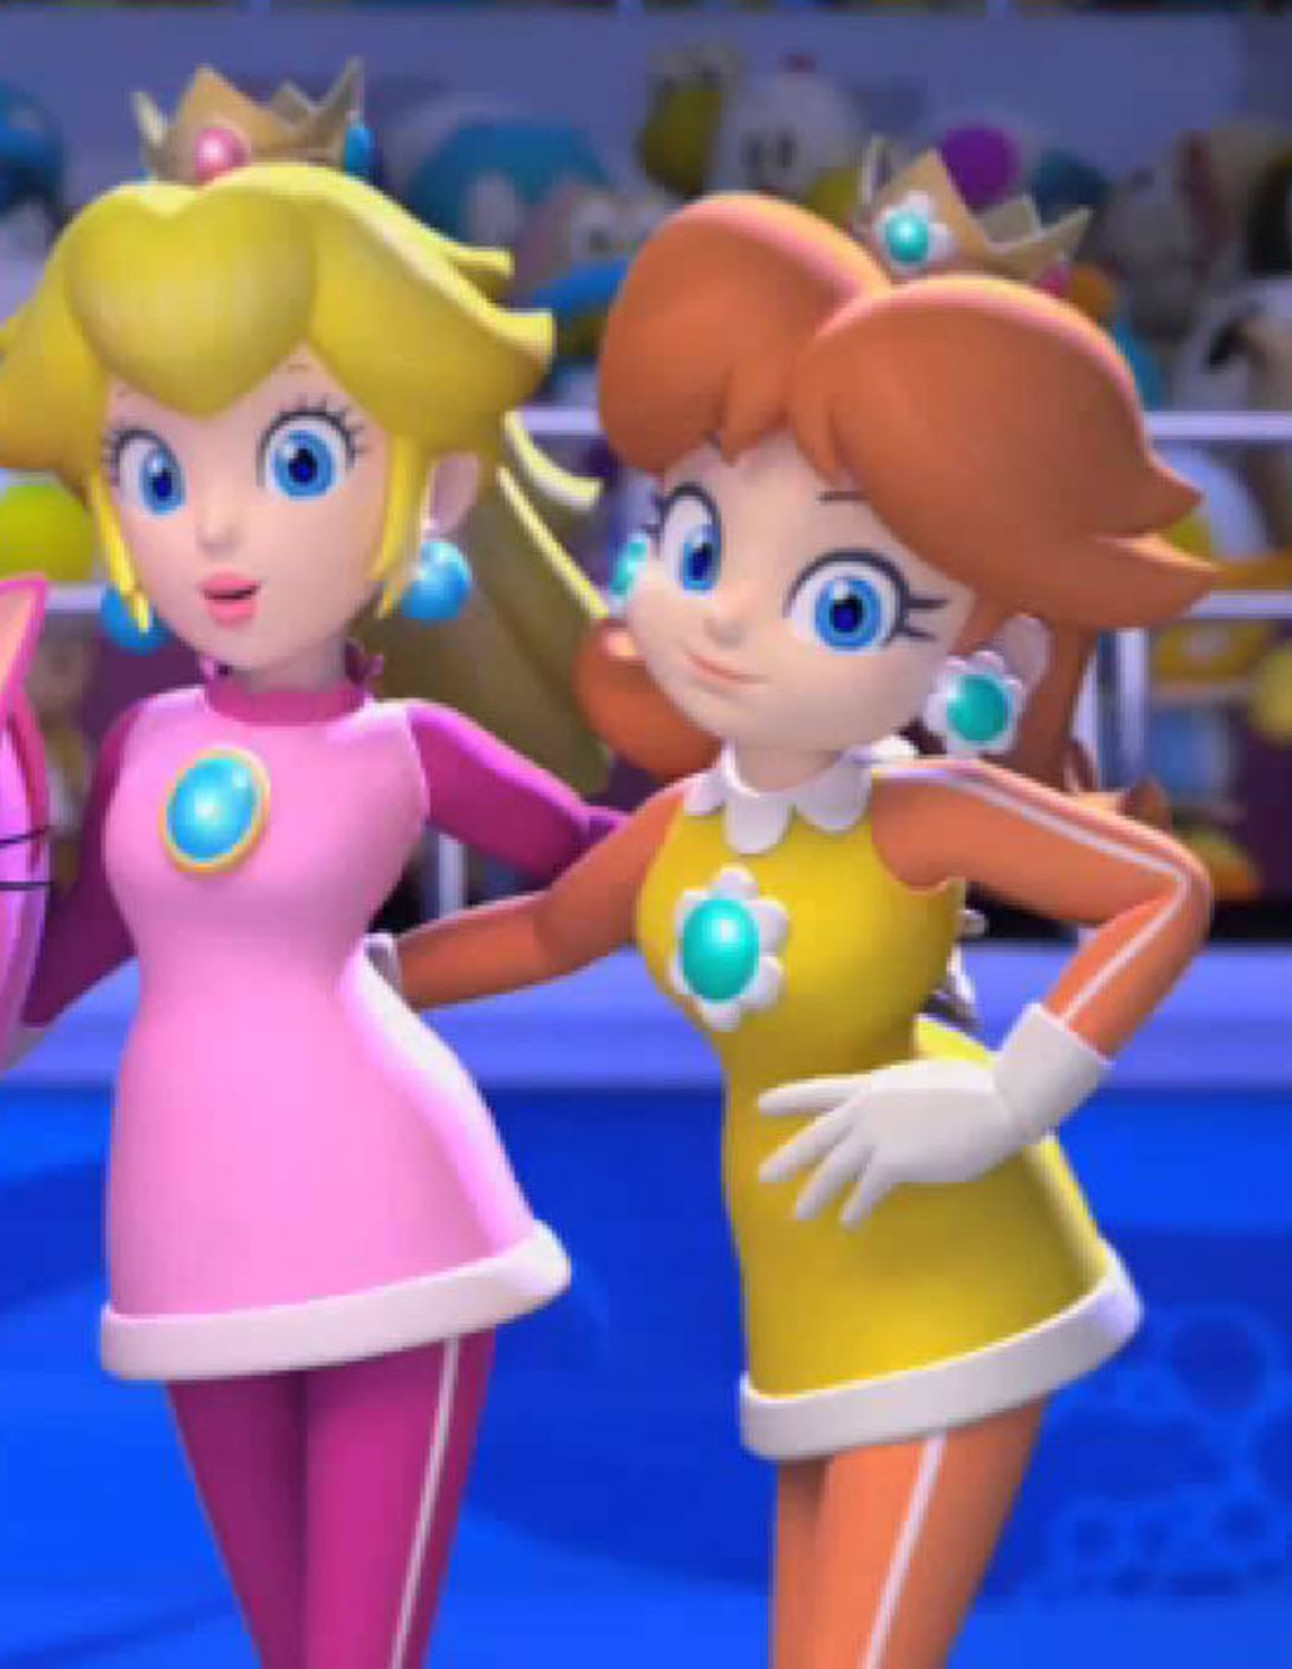 peach_and_daisy.jpg